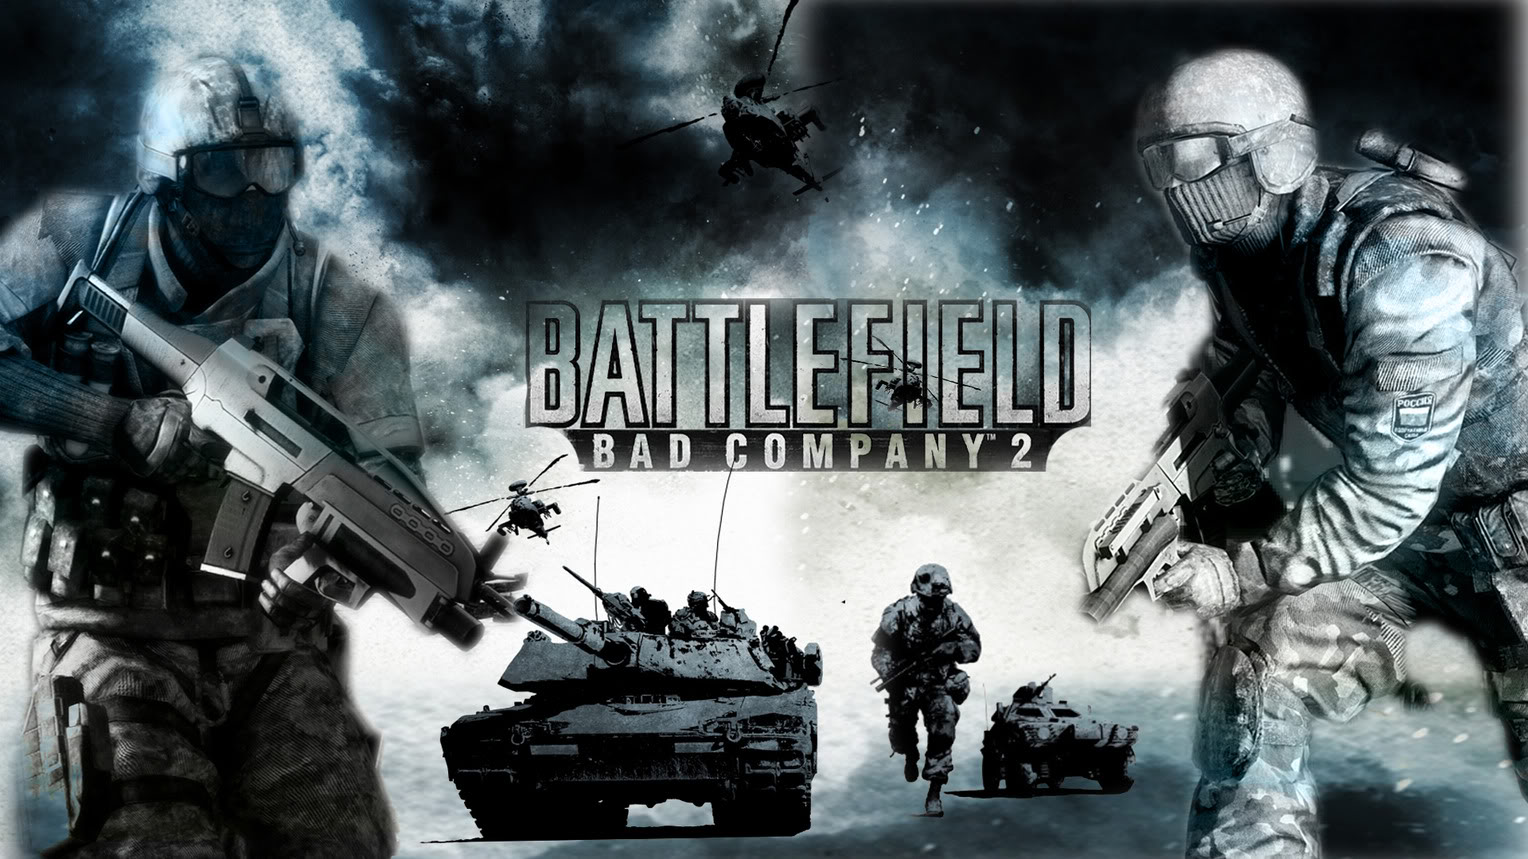 Battlefield Bad Company 2 Wallpaper For Android